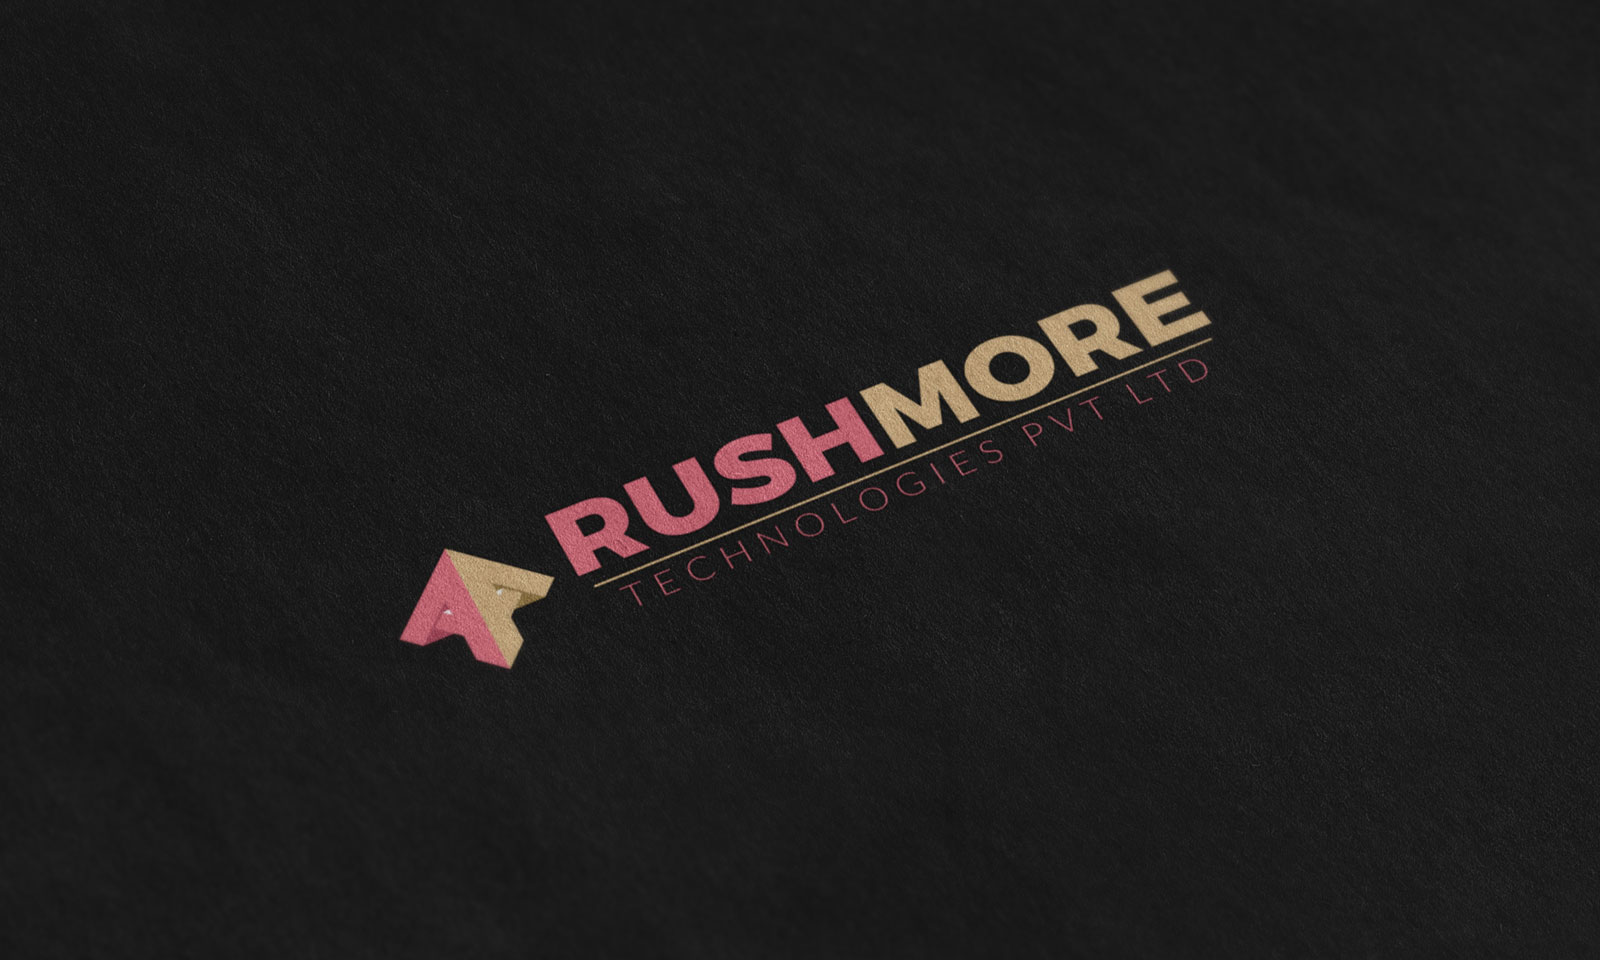 Rushmore Technologies